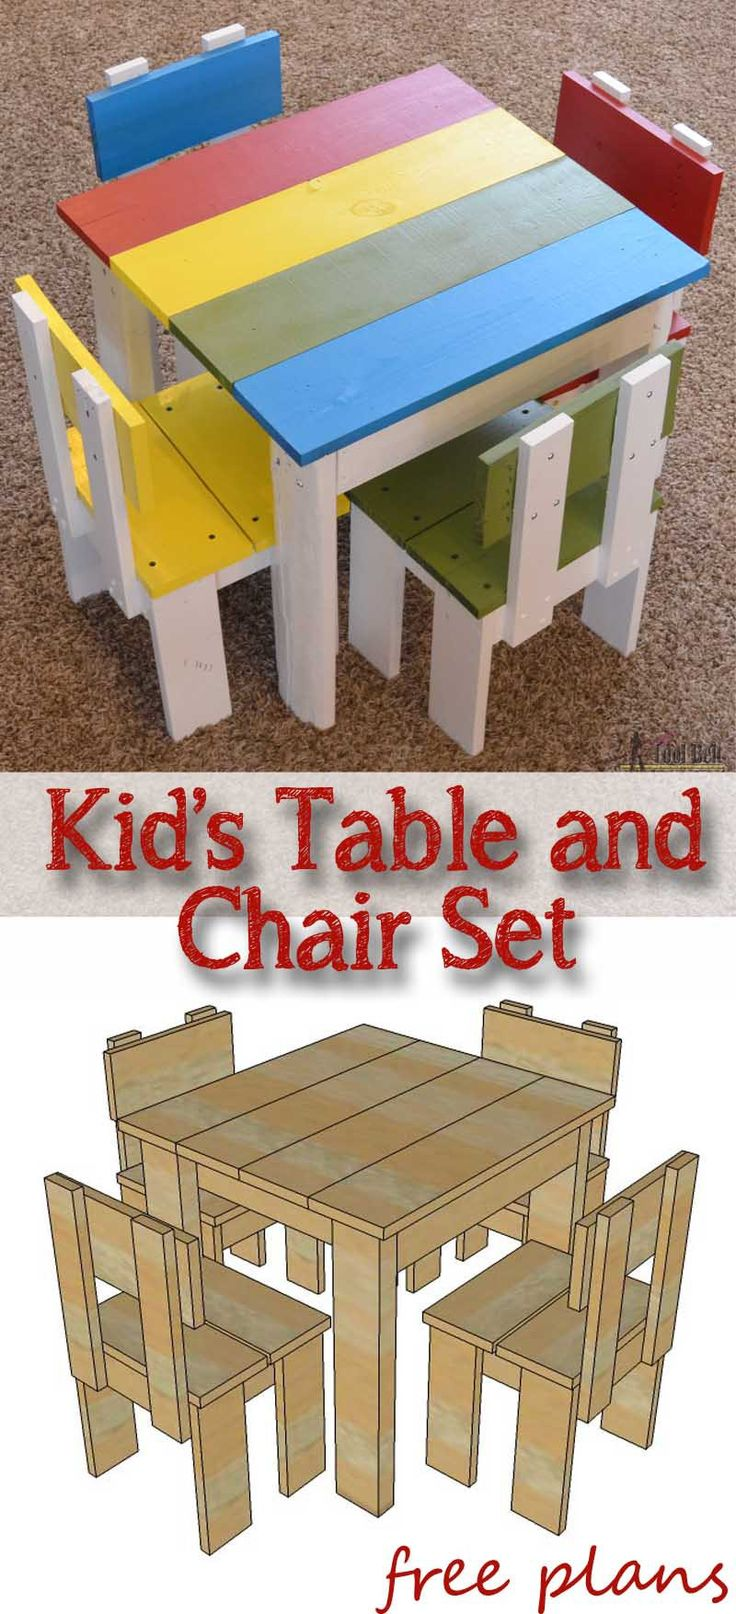 Ikea kids table and chairs - Simple Kid S Table And Chair Set